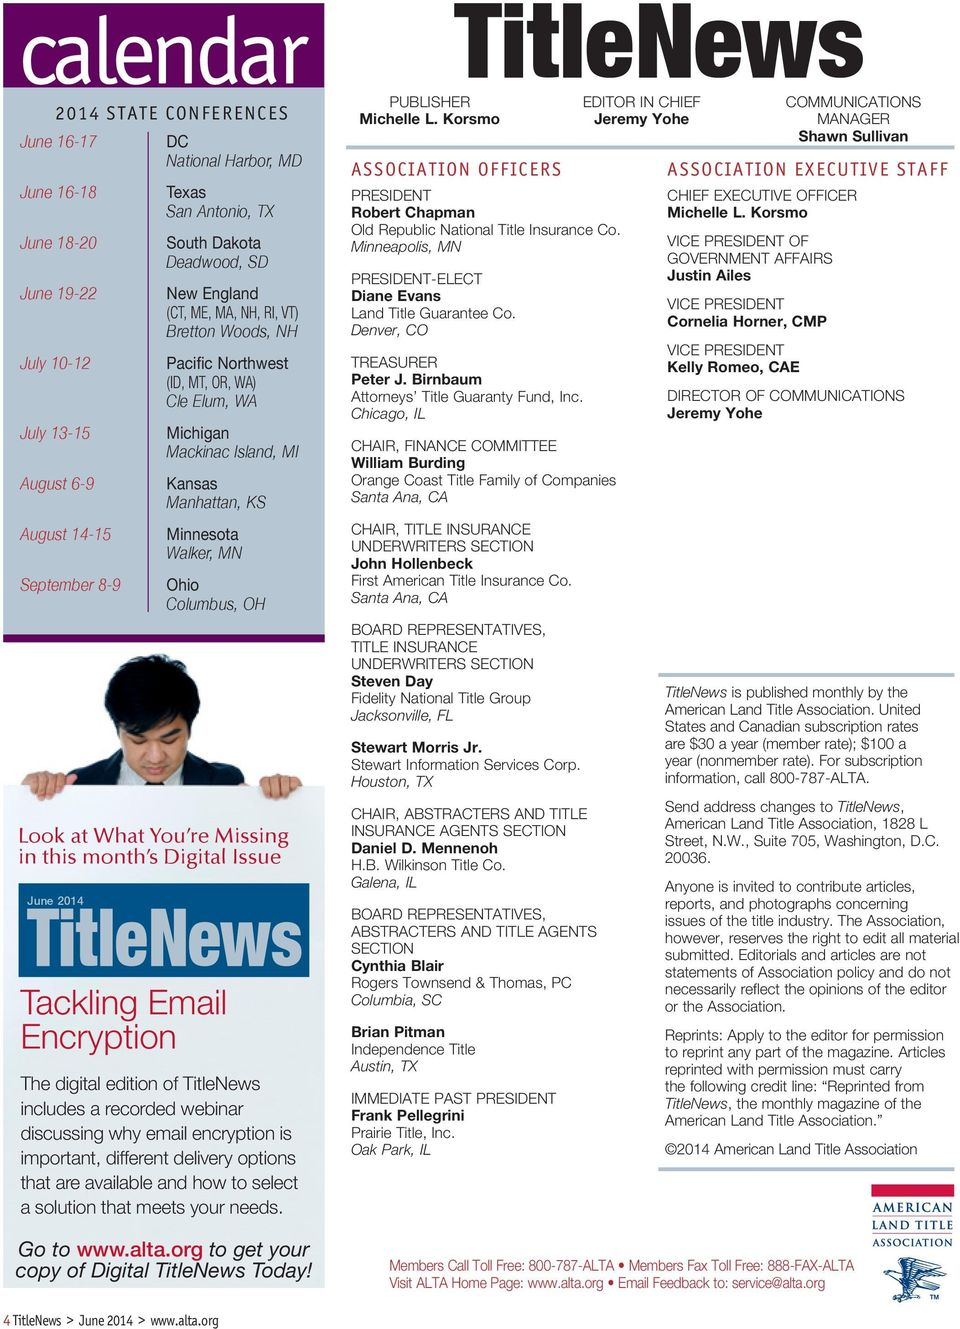 Columbus, OH Look at What You re Missing in this month s Digital Issue June 2014 Tackling Email Encryption The digital edition of TitleNews includes a recorded webinar discussing why email encryption